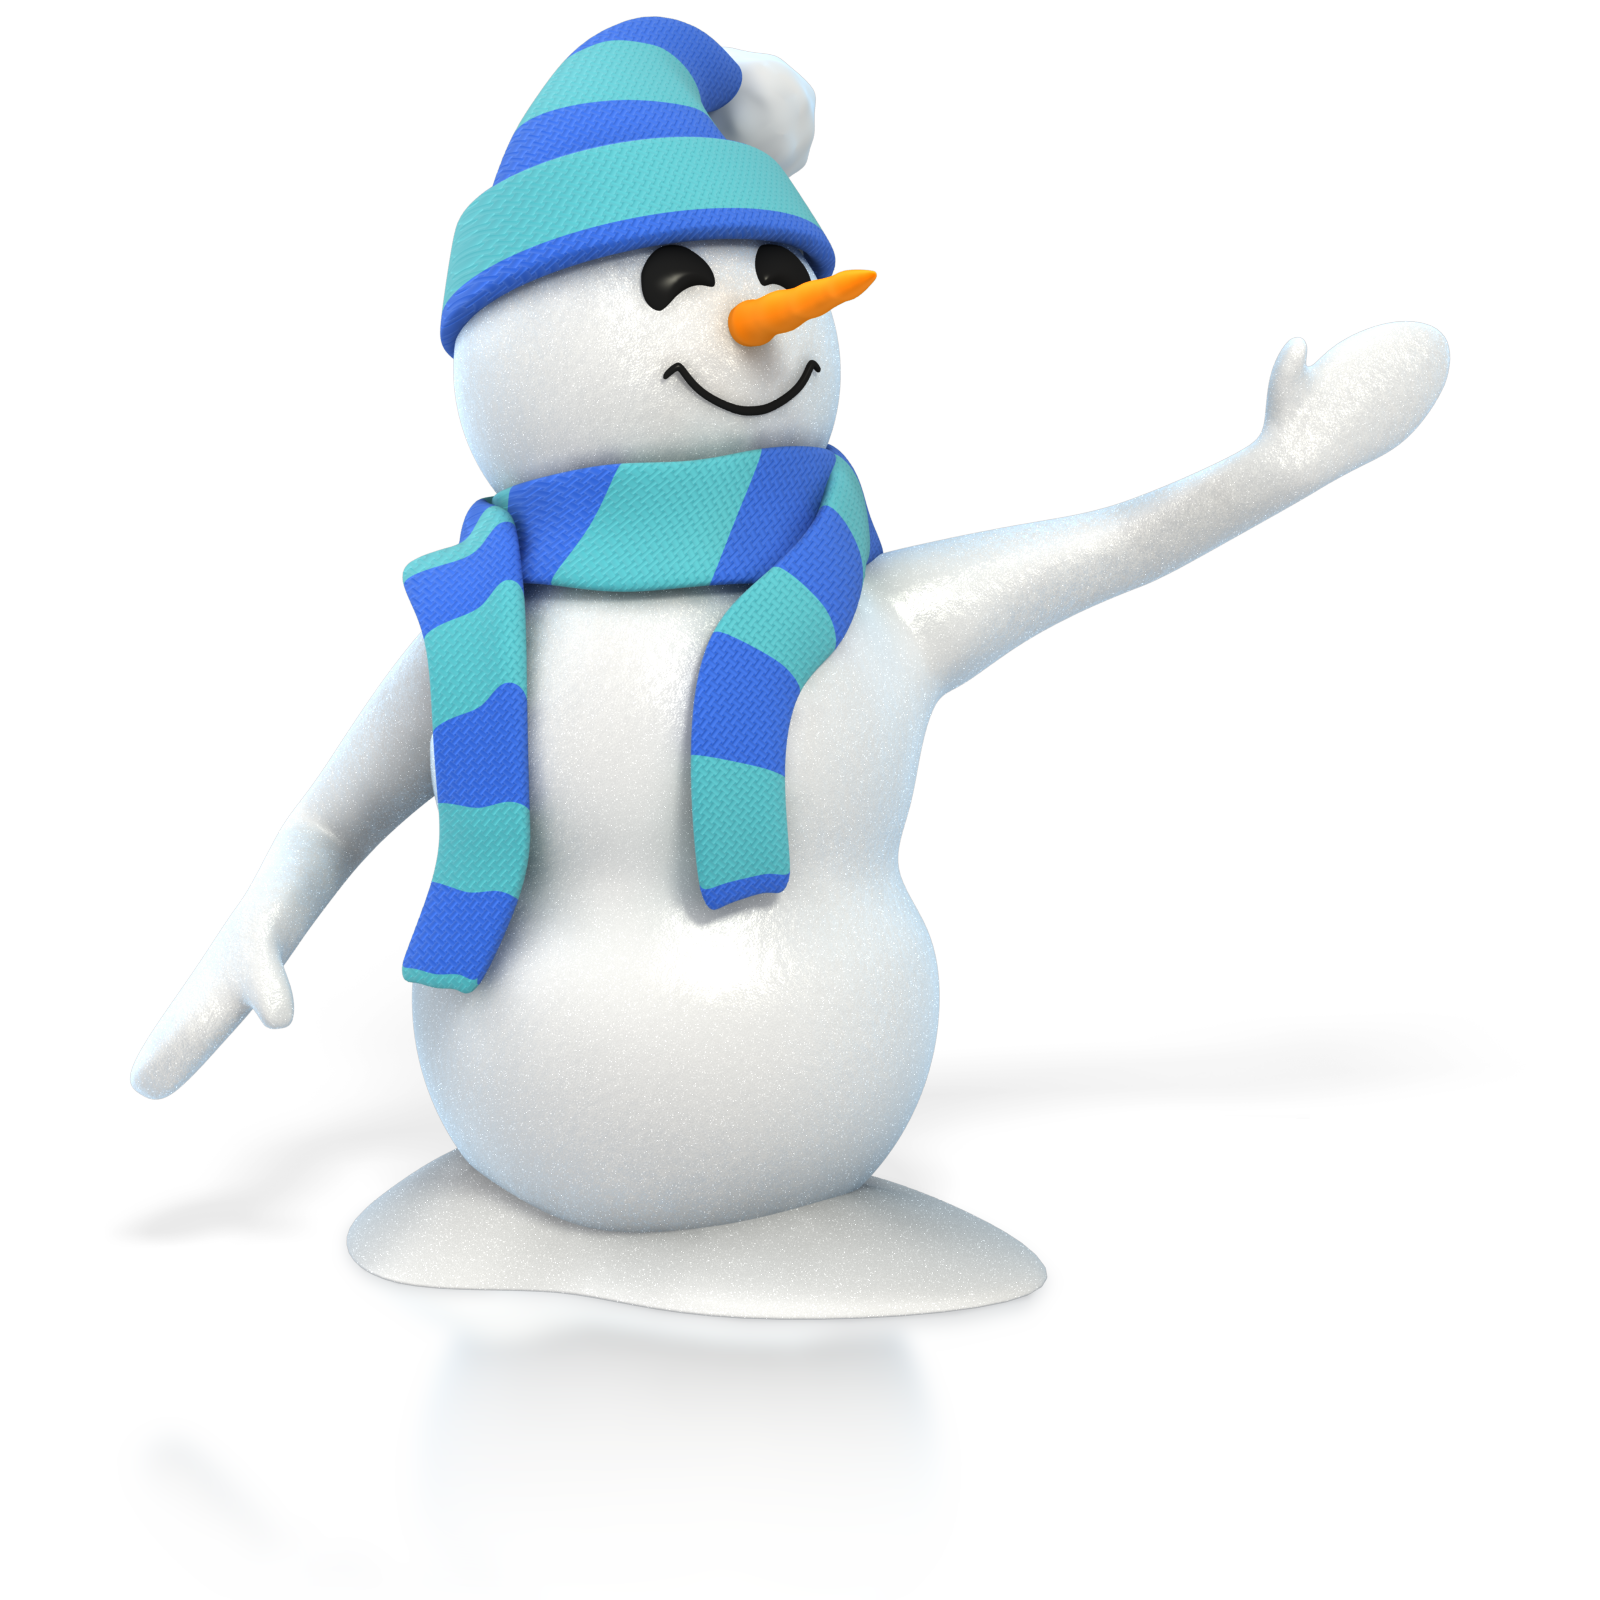 Snowman Png Available In Different Size image #30775